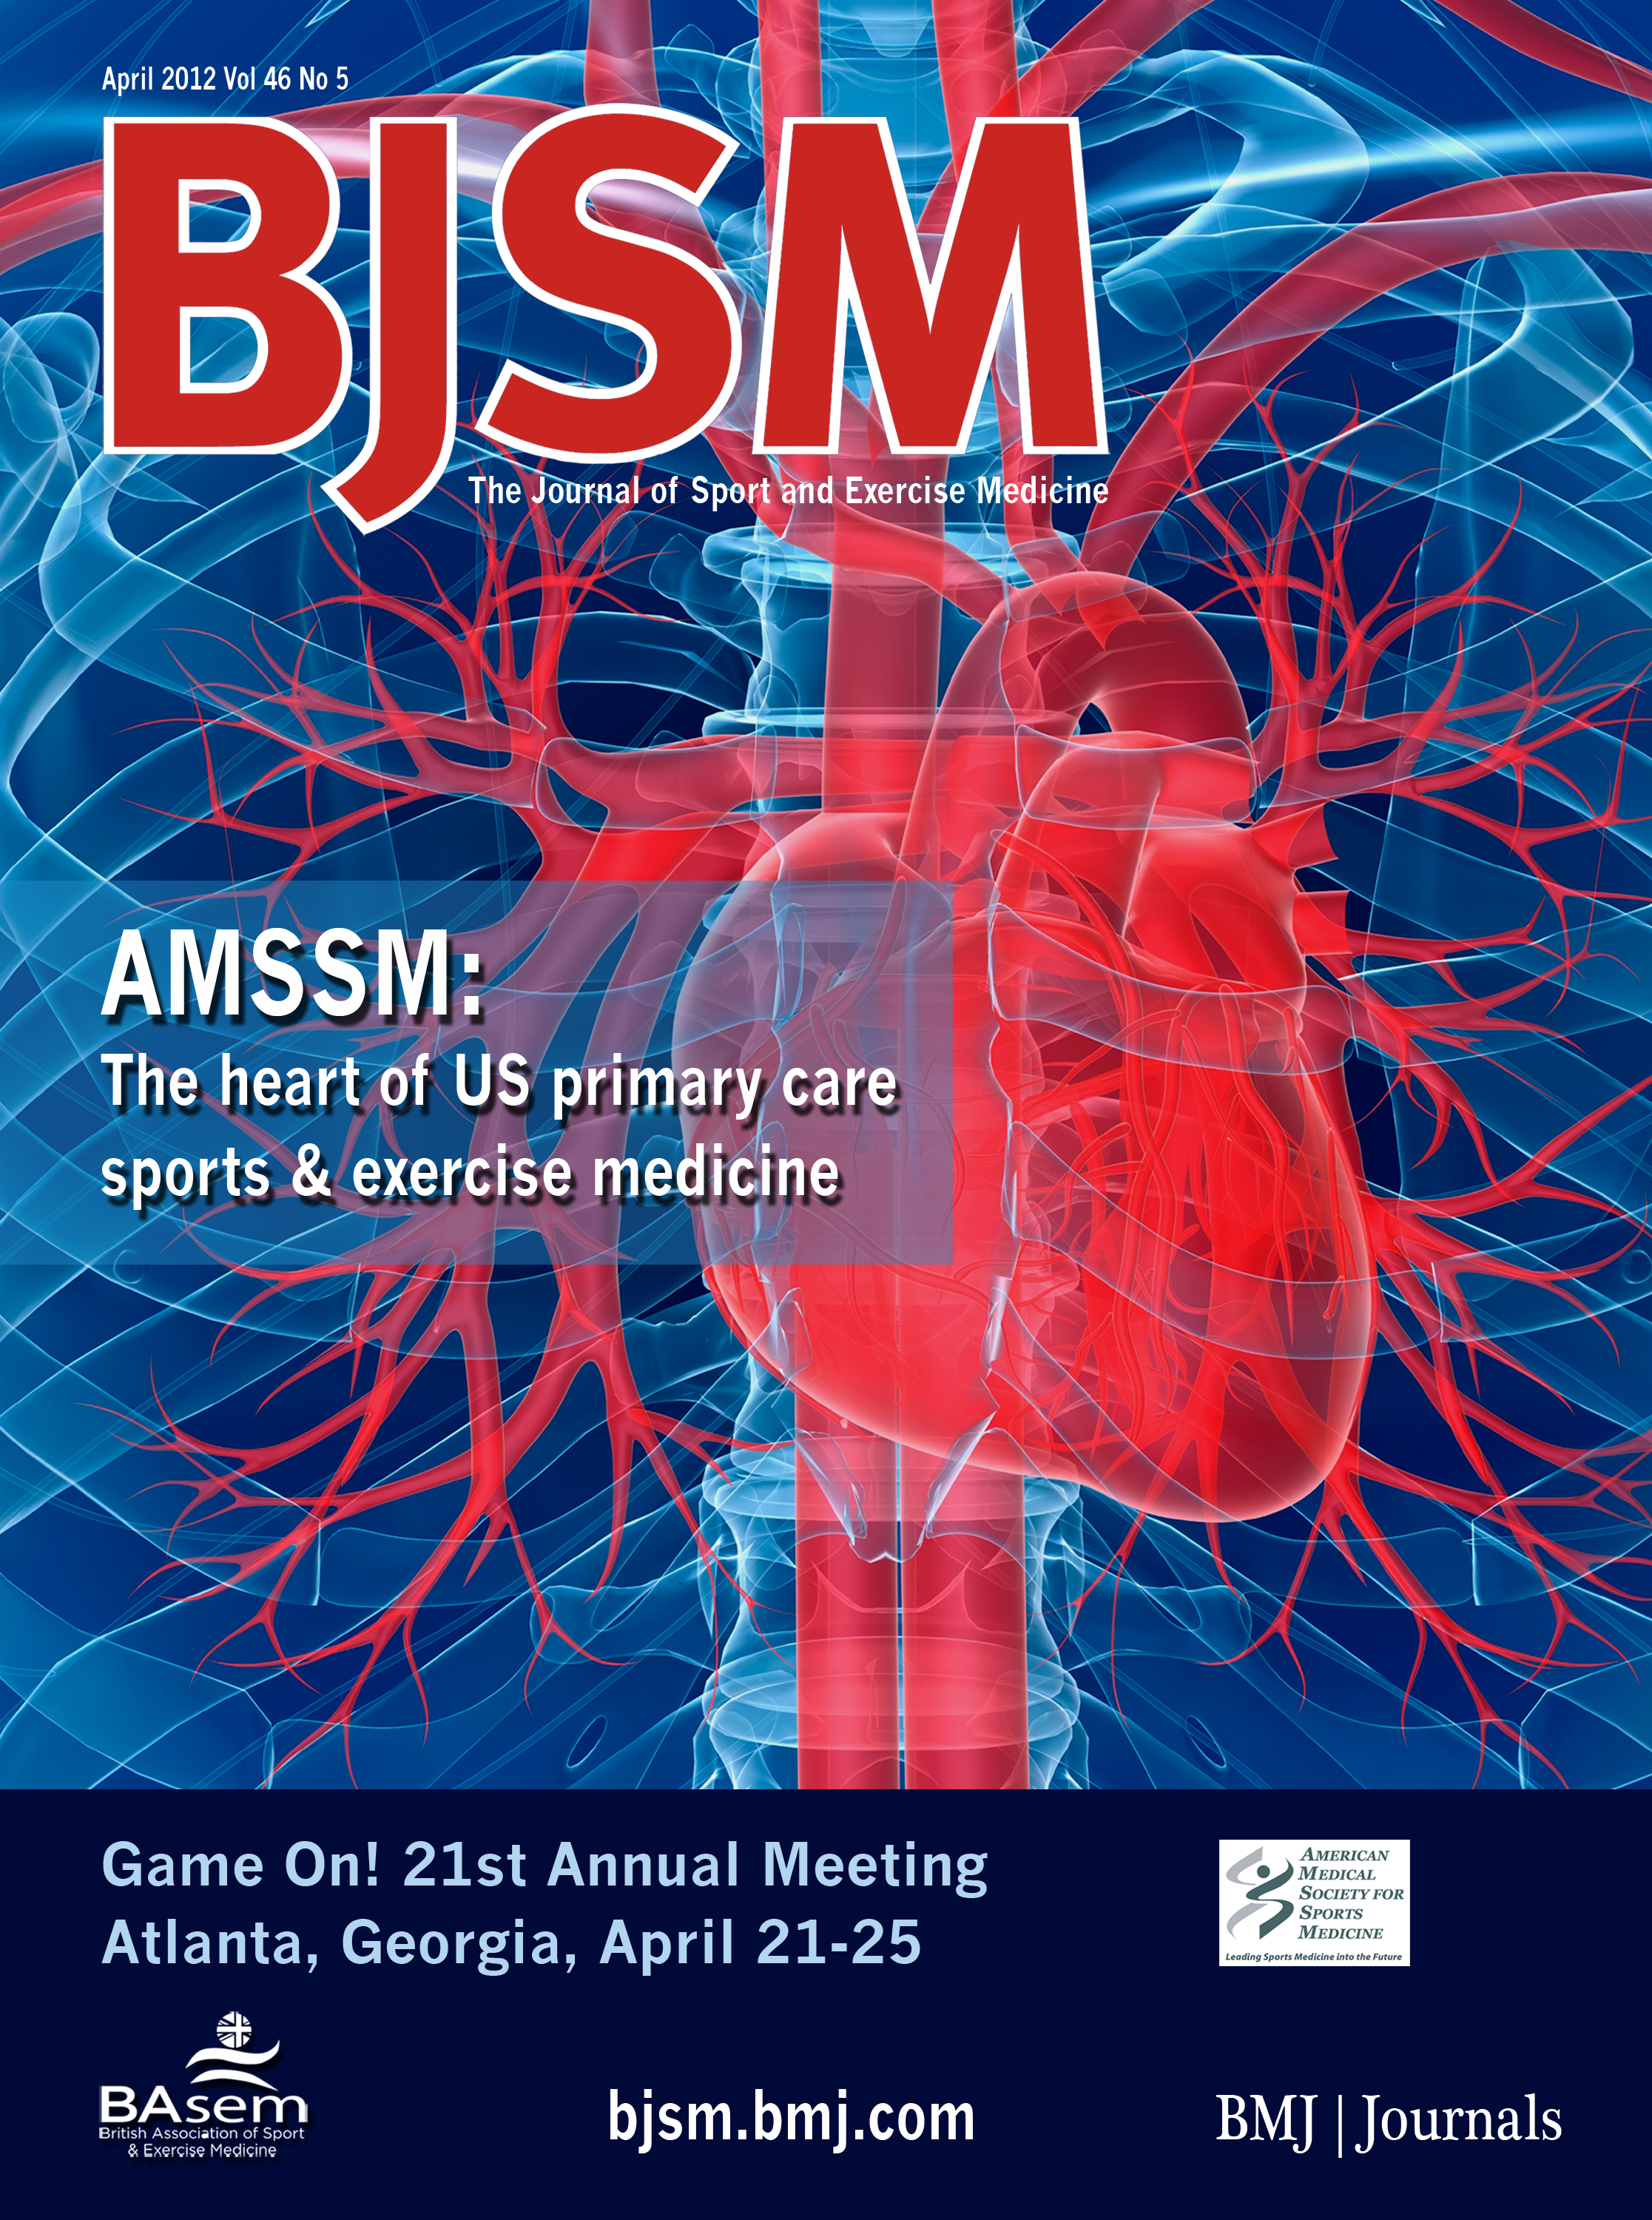 bjsm cover competition